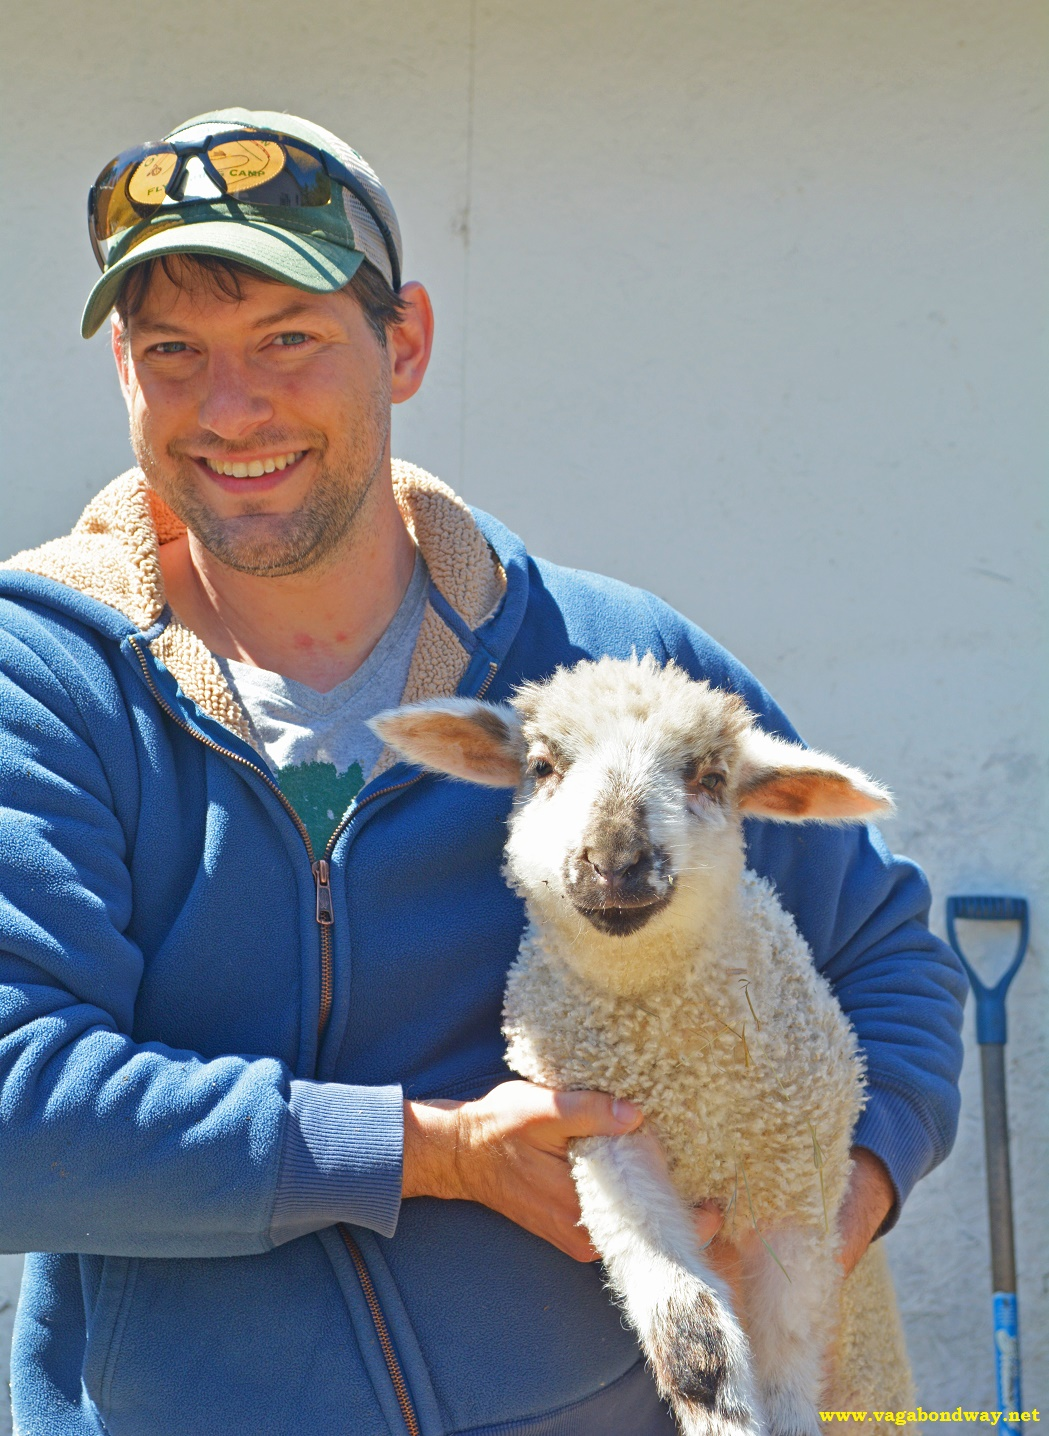 Chris with Lamb for travel adventure